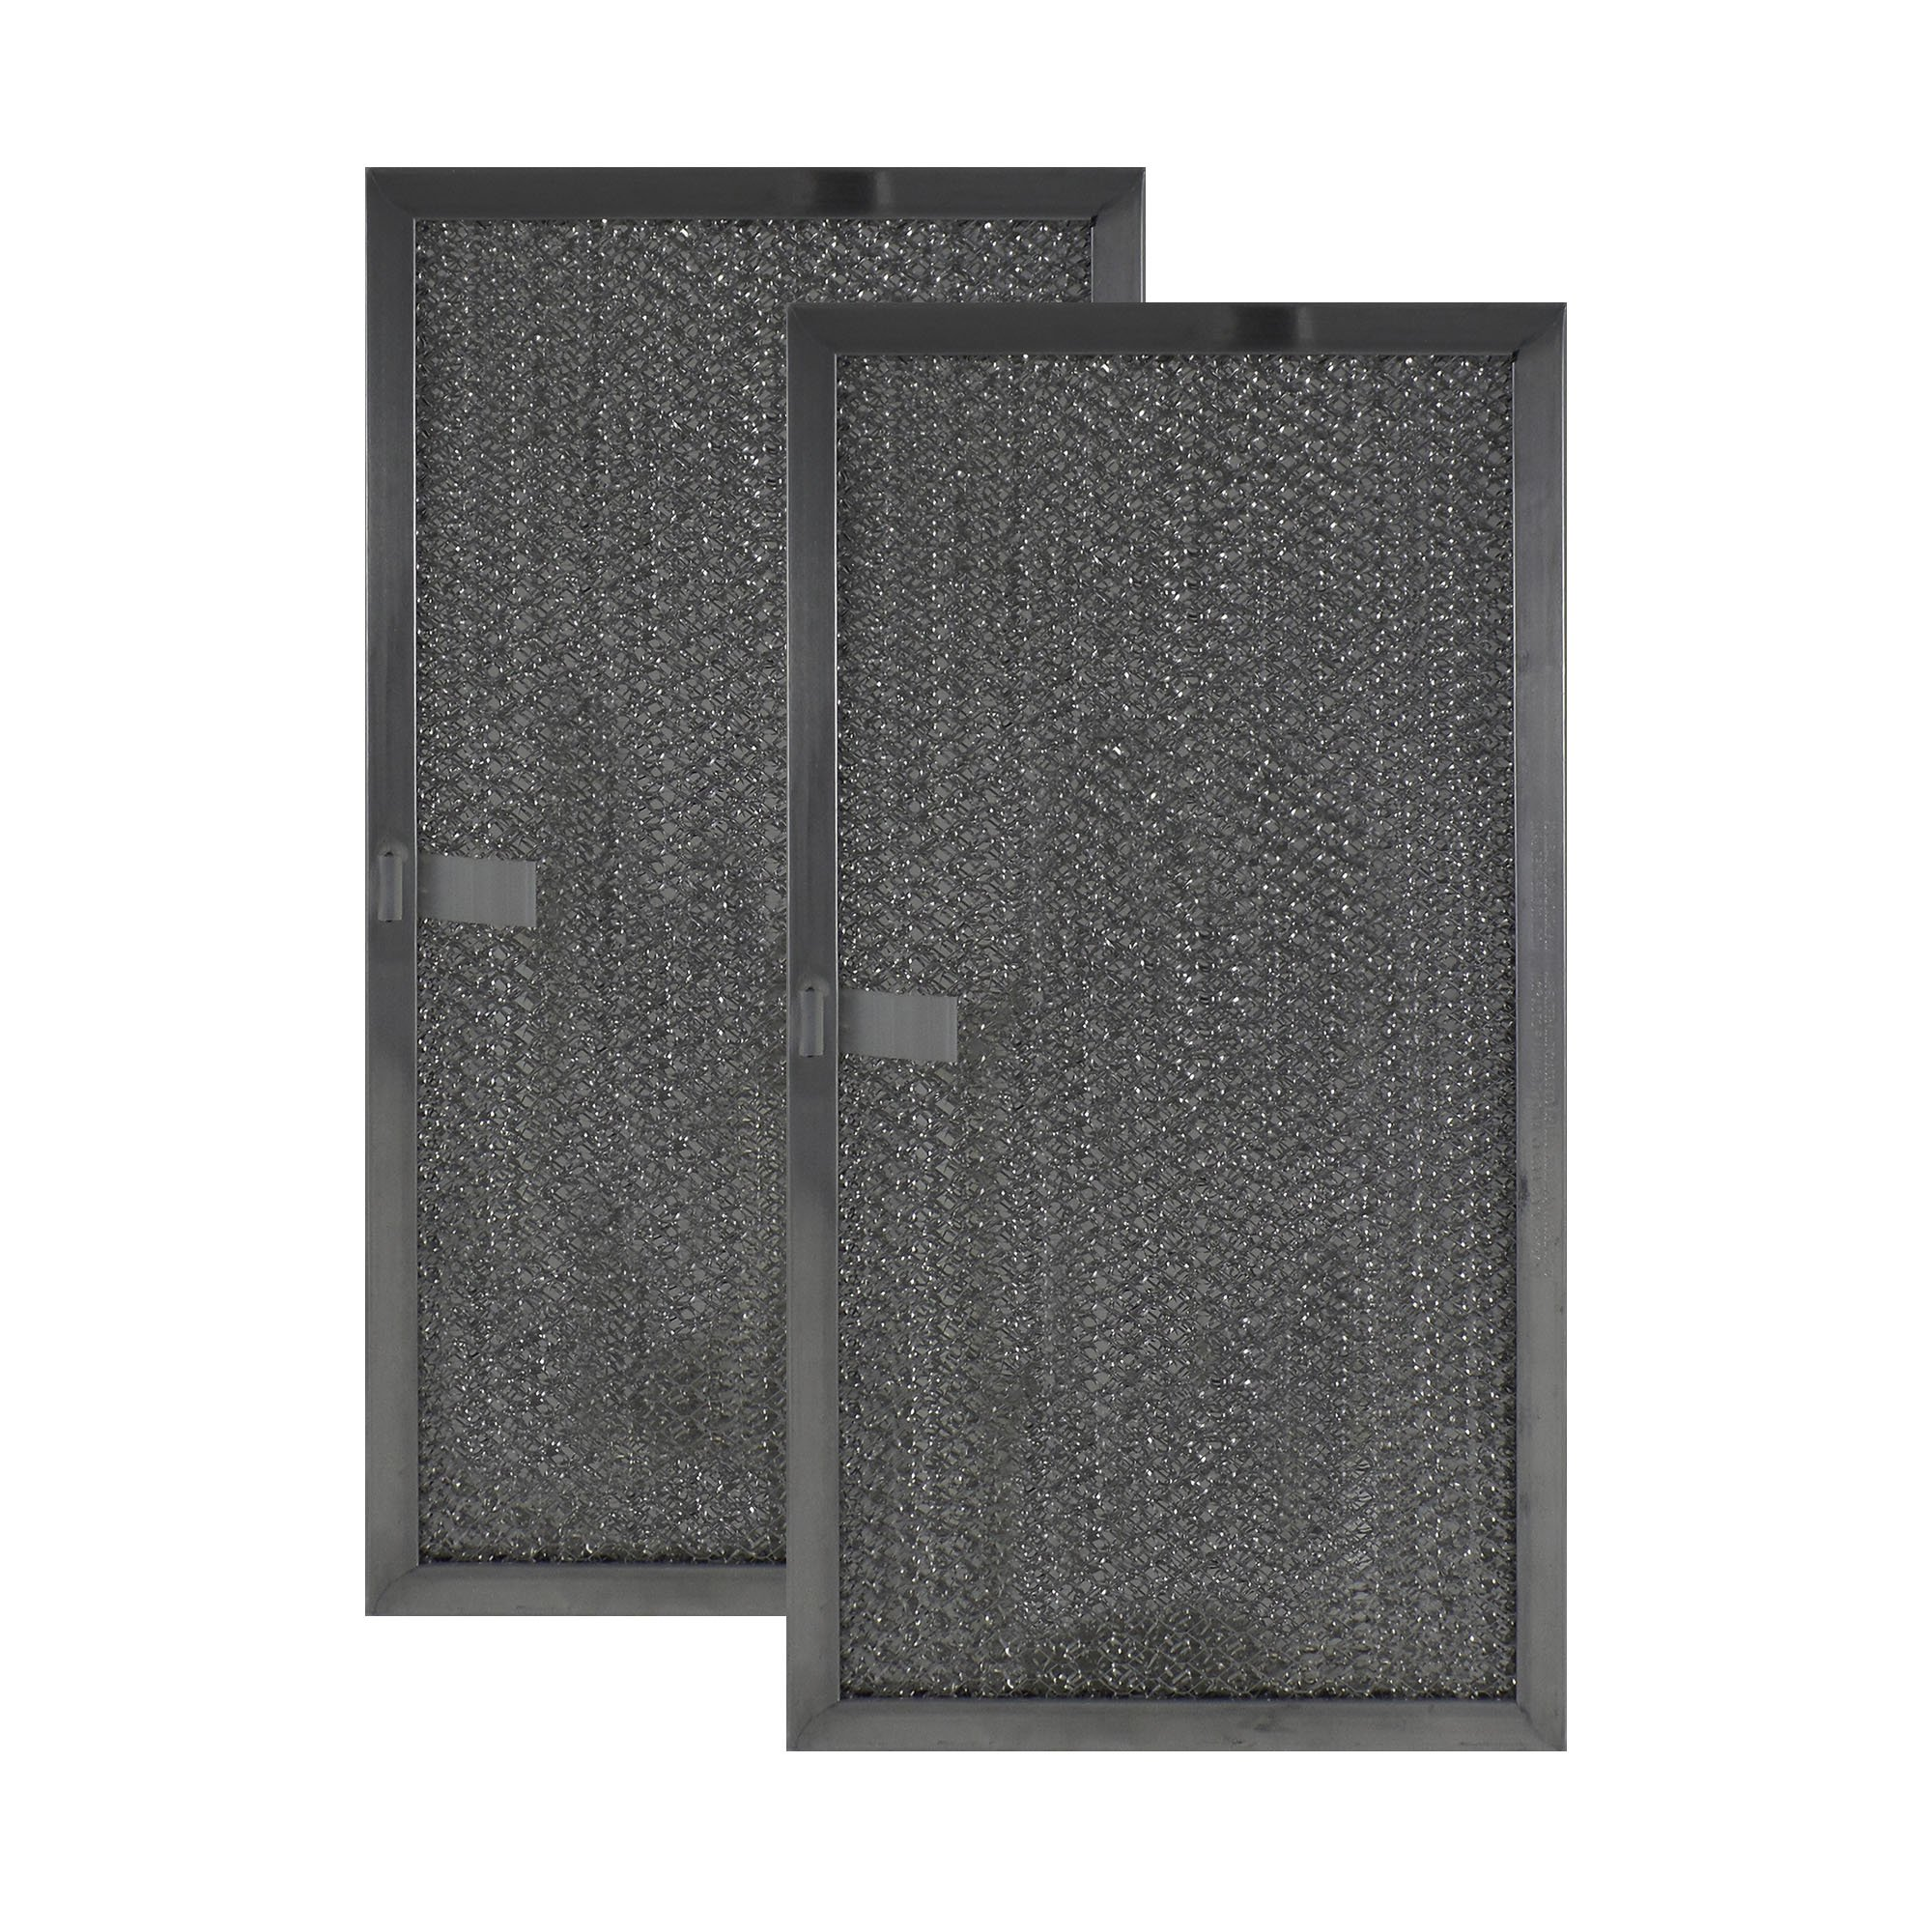 2 PACK Air Filter Factory Compatible Replacement For Whirlpool 8206229 8206229A Microwave Oven Aluminum Grease Filter